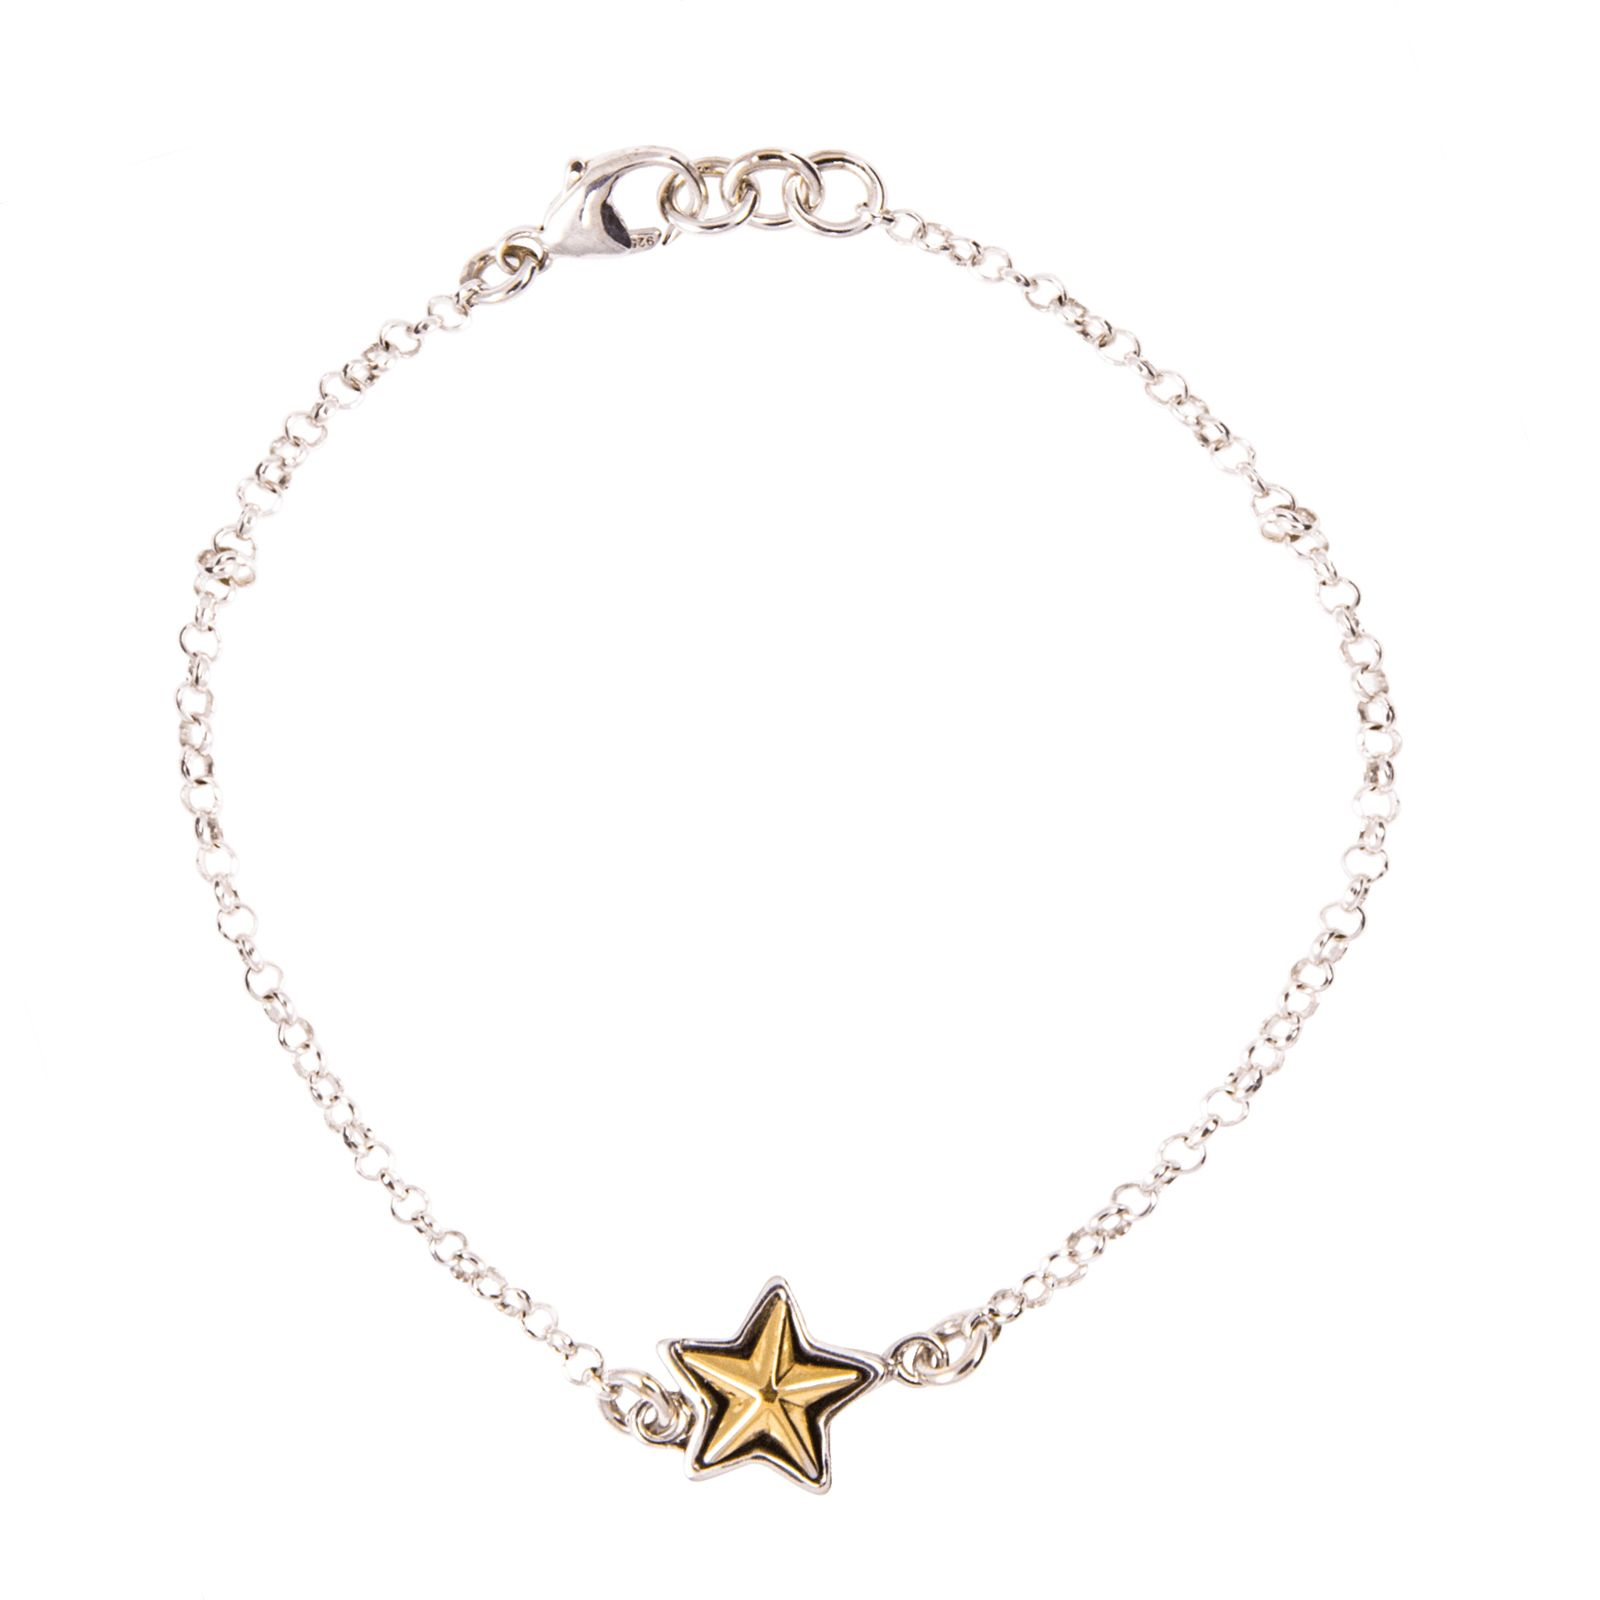 Single Texas Star Sterling Silver Bracelet